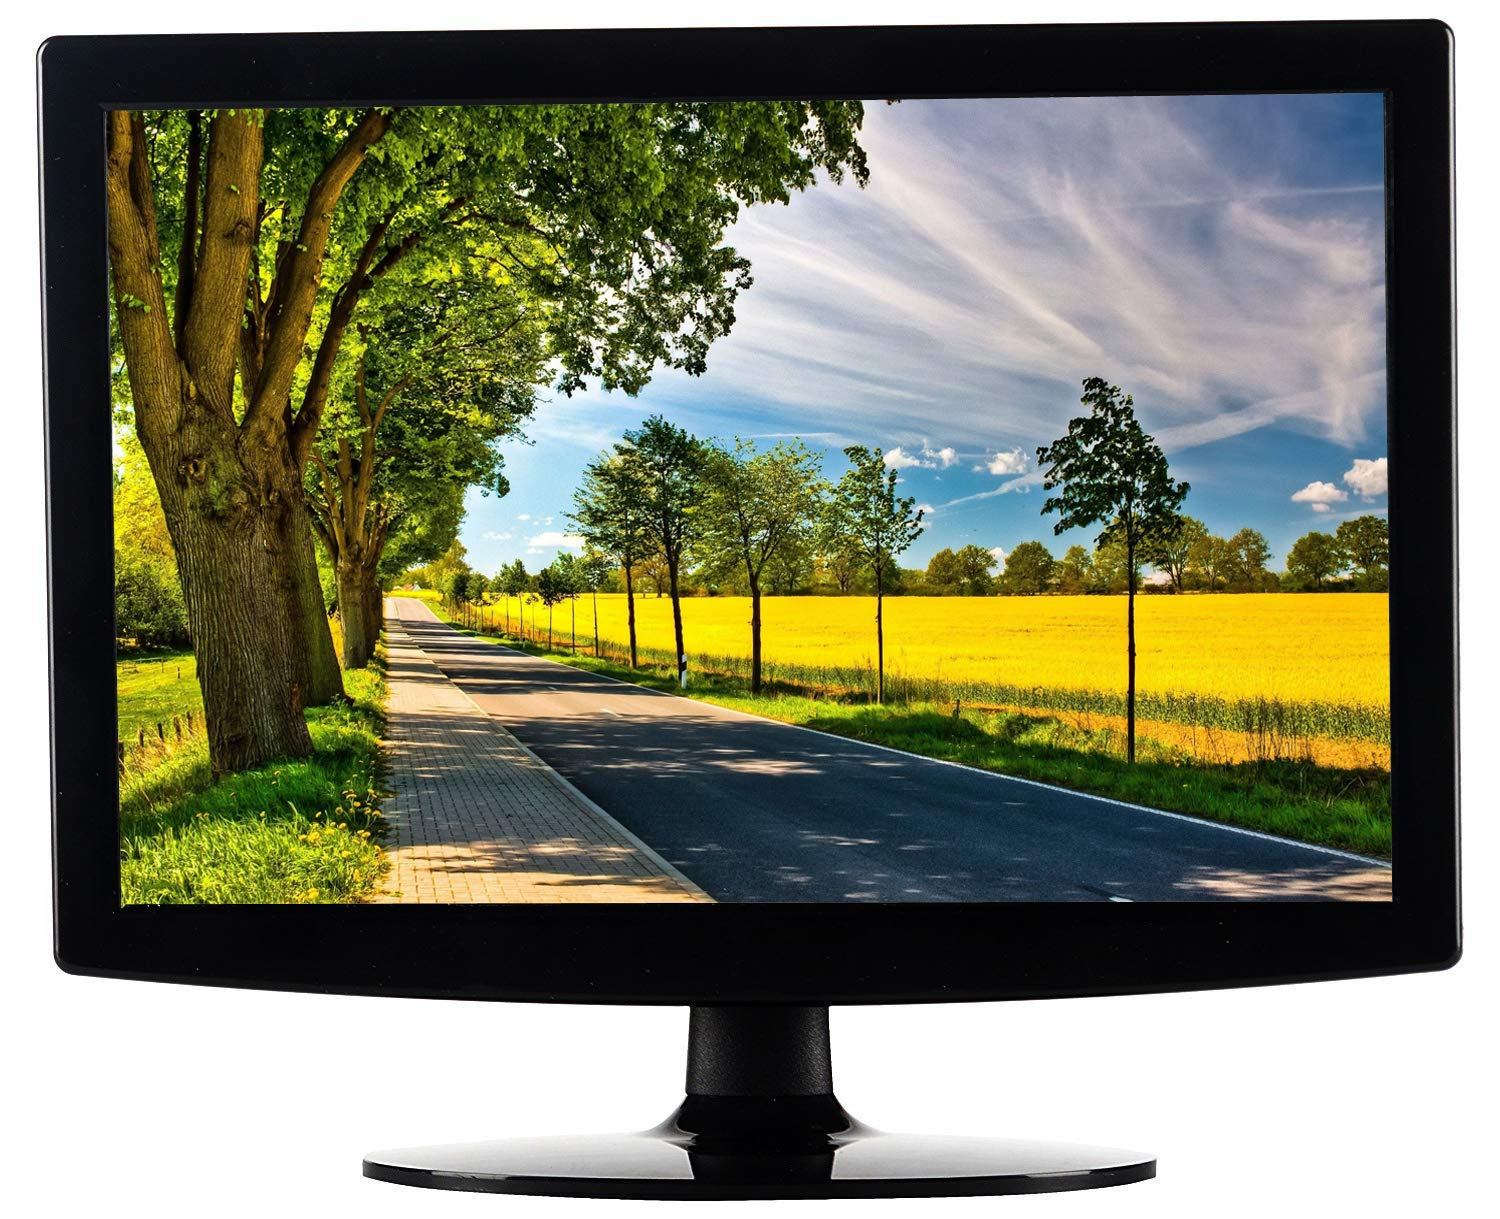 Amazon.in: Buy TECH-COM 17.1-inch/43.4 Cm Slim LED Monitor (Black) Online  at Low Prices in India | TECH-COM Reviews & Ratings